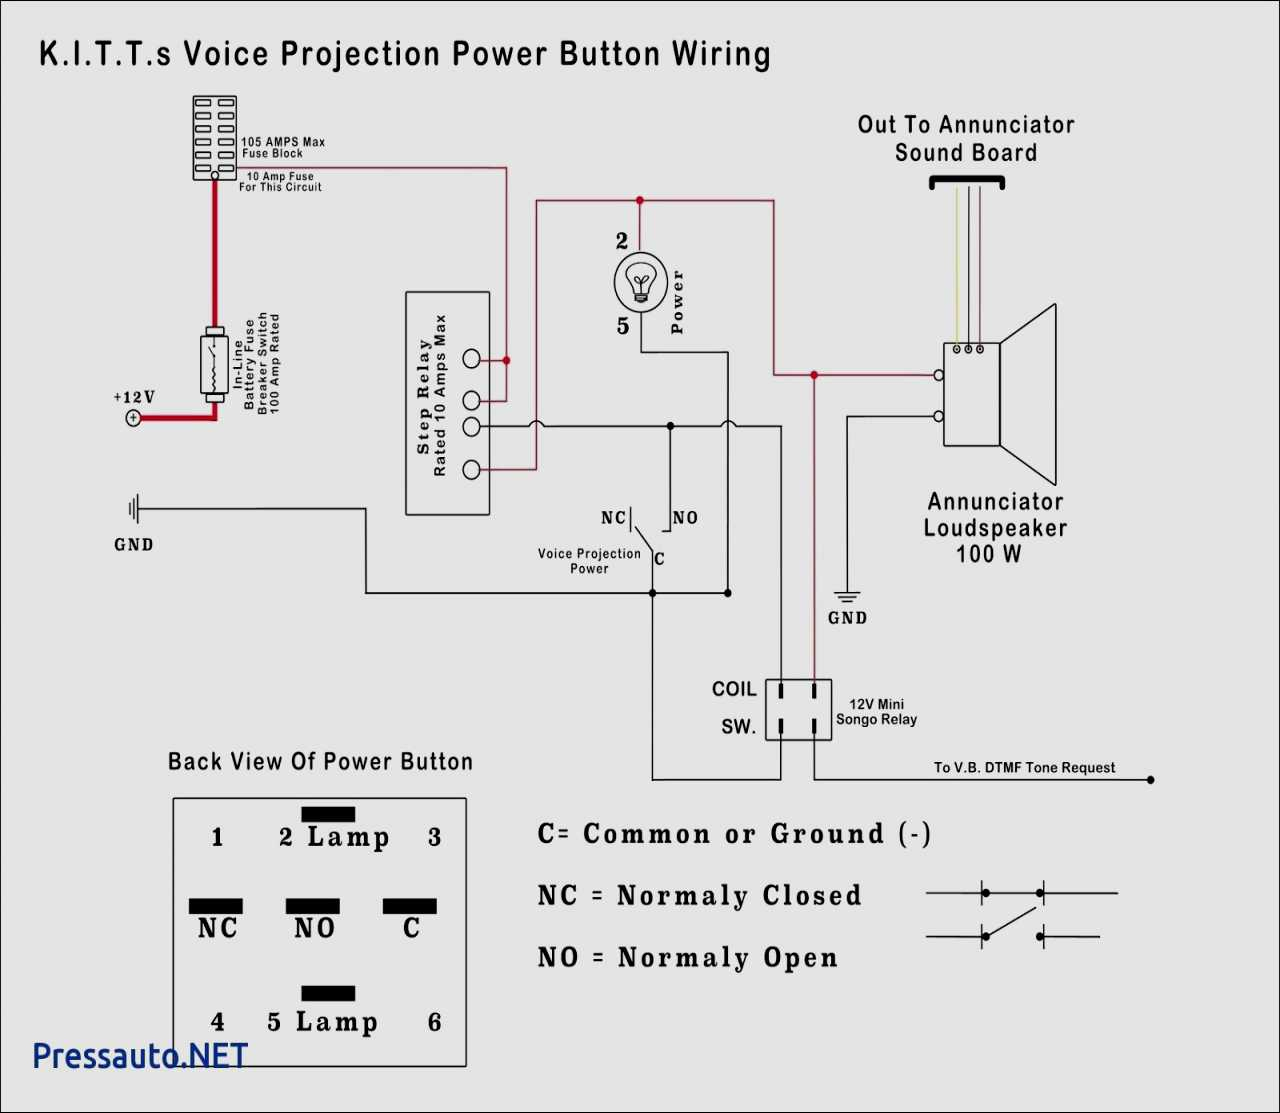 11 Pin Ice Cube Relay Wiring Diagram - All Wiring Diagram - Ice Cube Relay Wiring Diagram